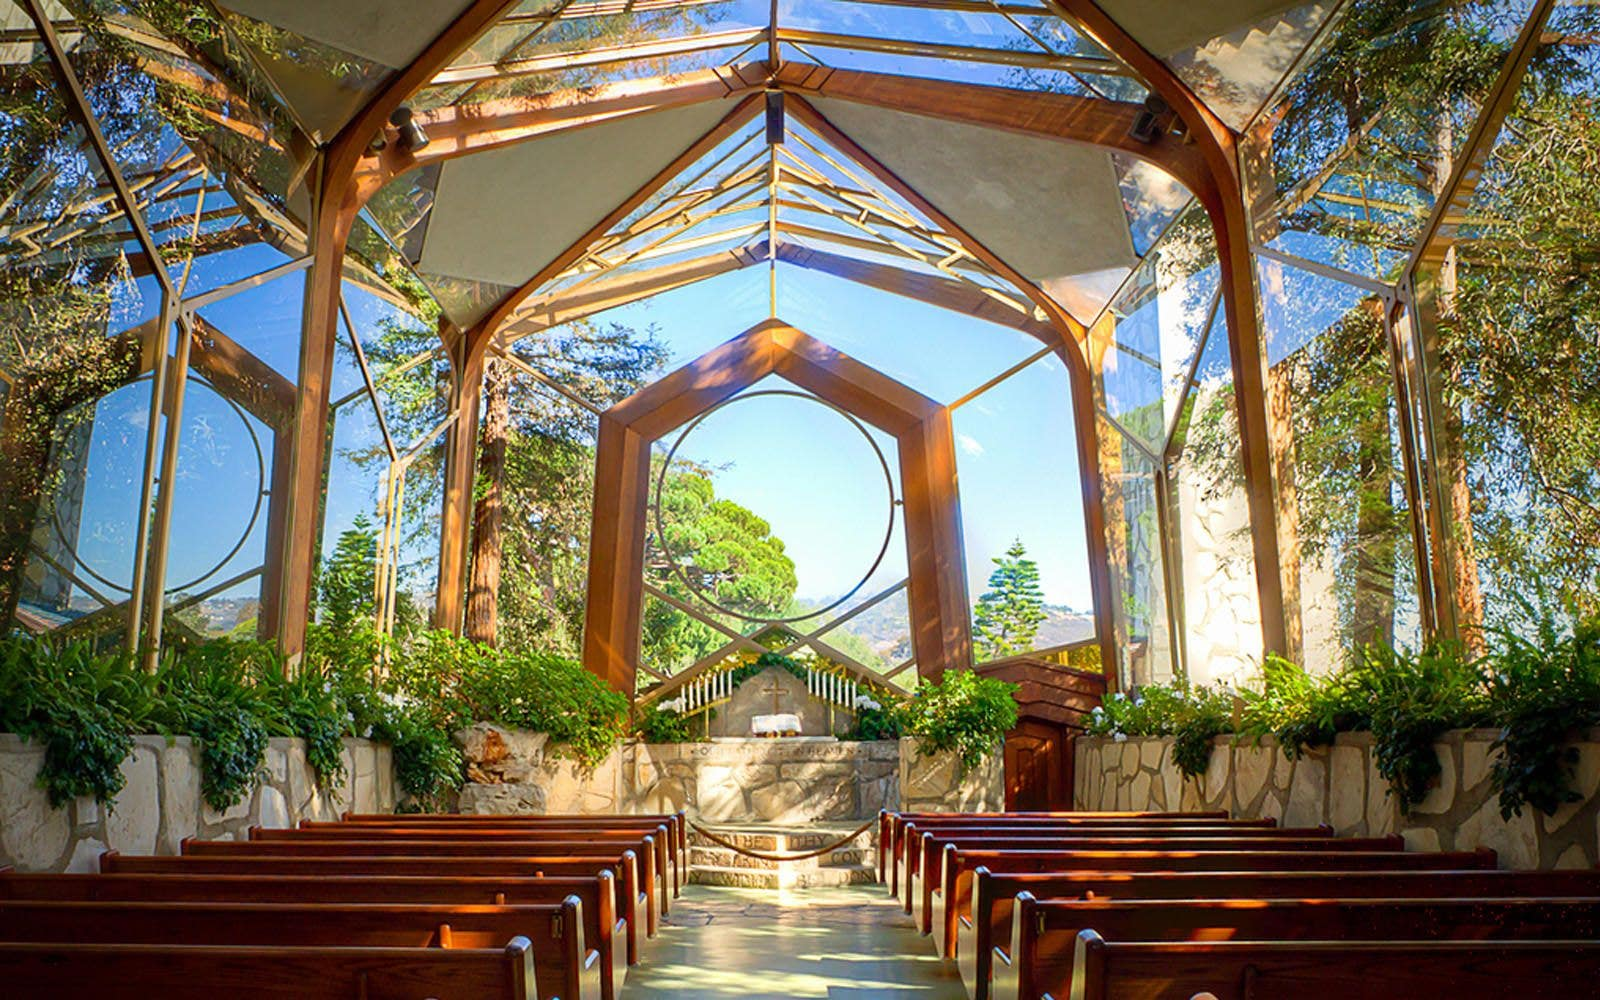 Wayfarers Chapel interior during the day